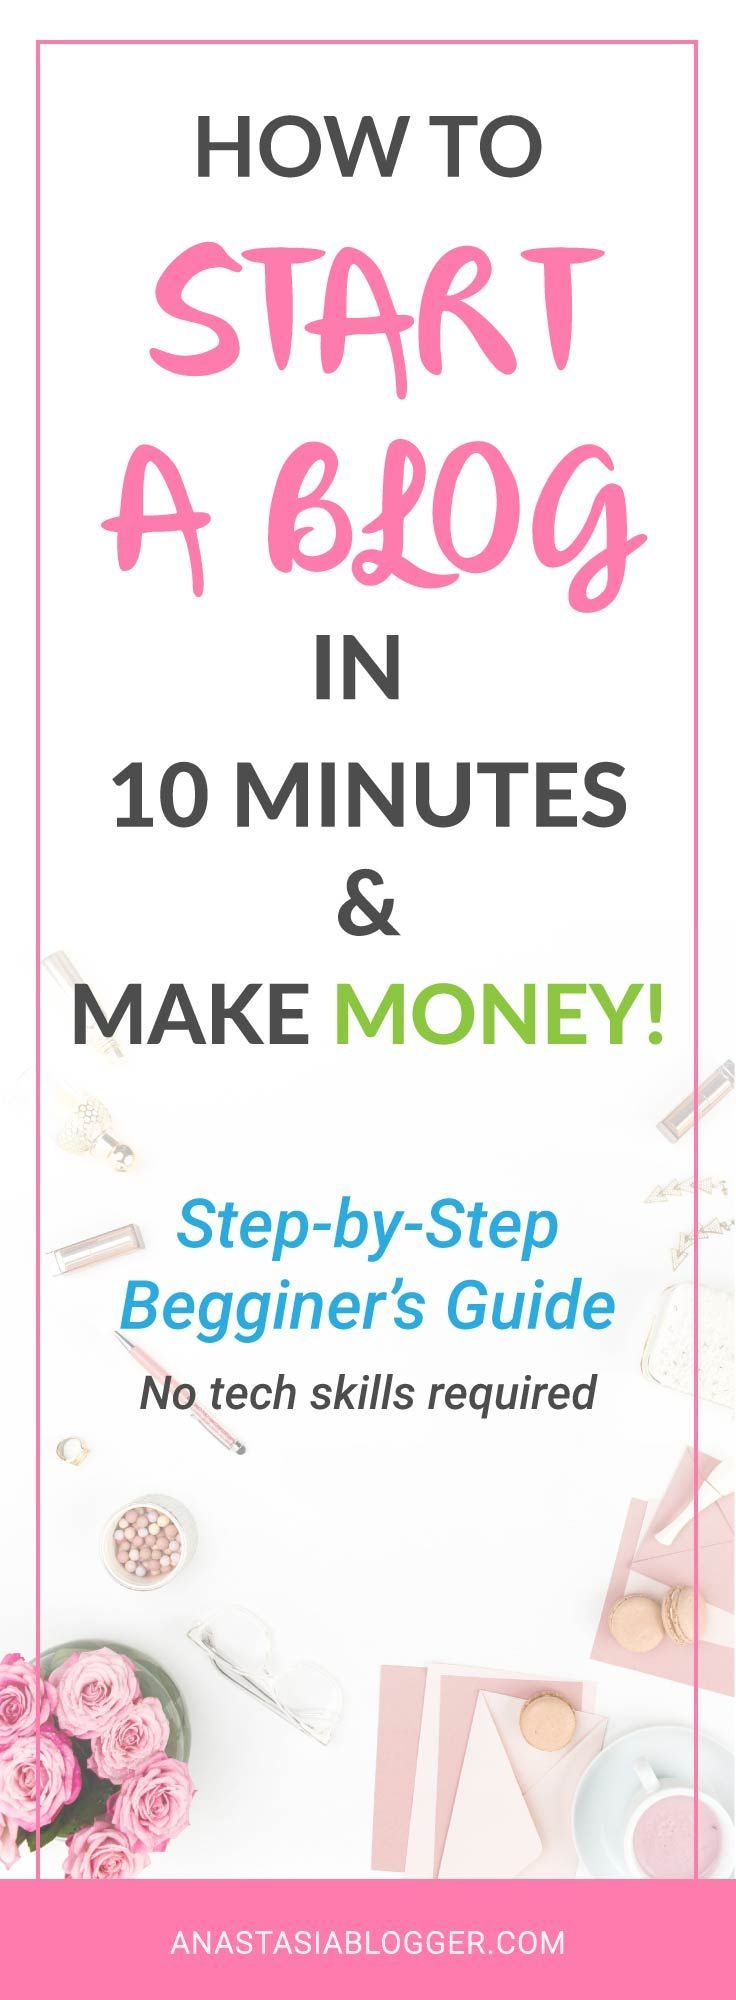 How to Start a Blog in 10 minutes: a Step-by-Step Guide for Beginners. Start your blog and make money online! How to create a blog? Get a tutorial on how to buy a domain name, register hosting and have your blog online in just 10 minutes! Blogging 101, blogging tips, blogging for beginners. To check this post later, save this Pin now!